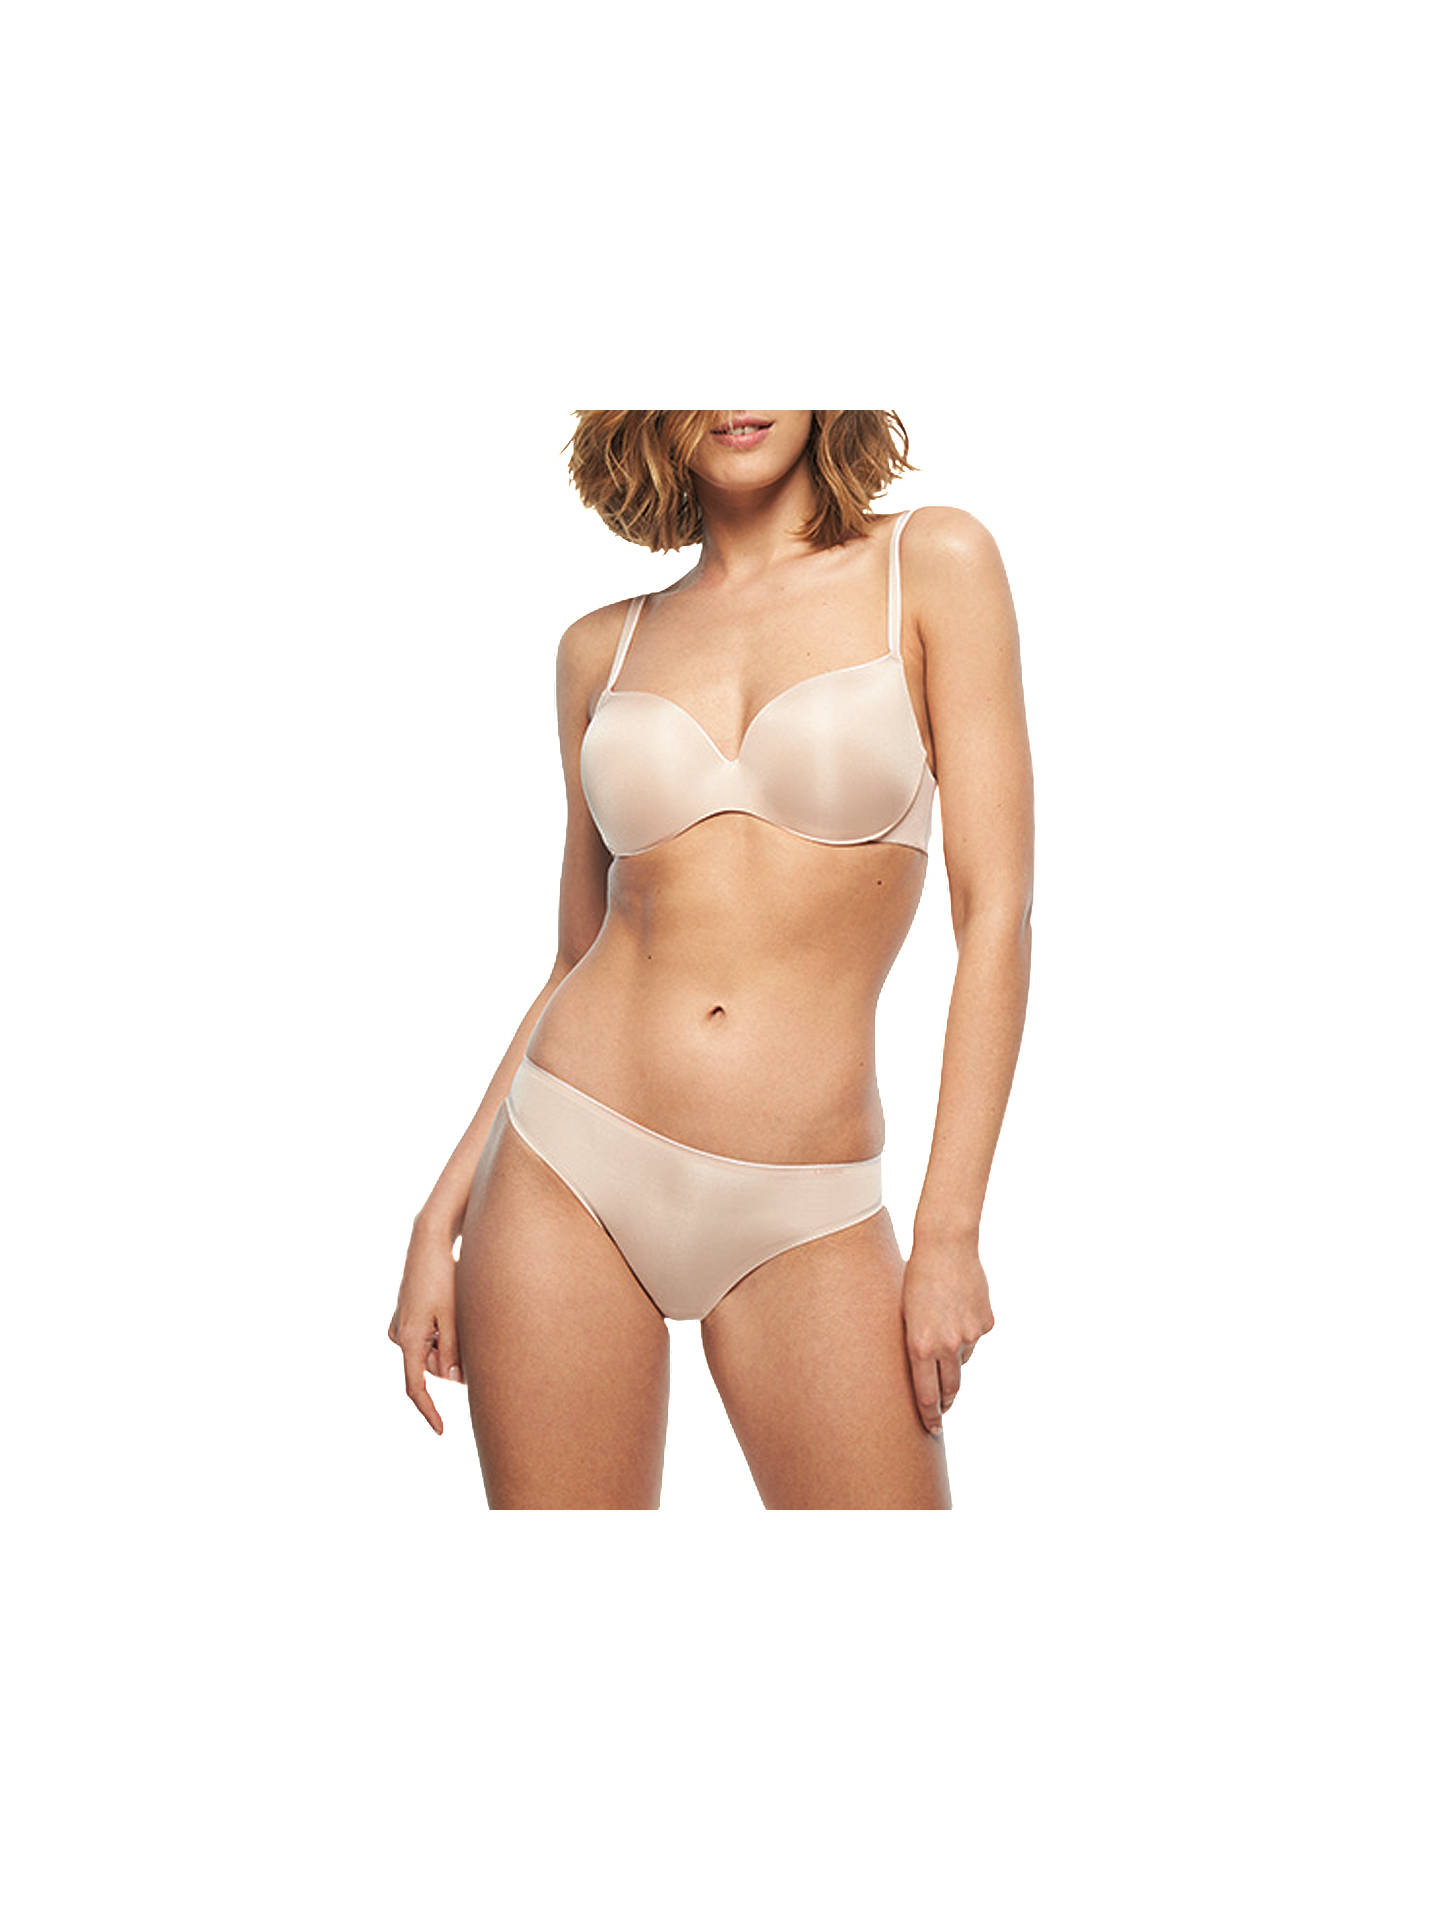 31661f0c487af ... Buy Chantelle Irresistible T-Shirt Bra, Cappuccino, 32B Online at  johnlewis.com ...